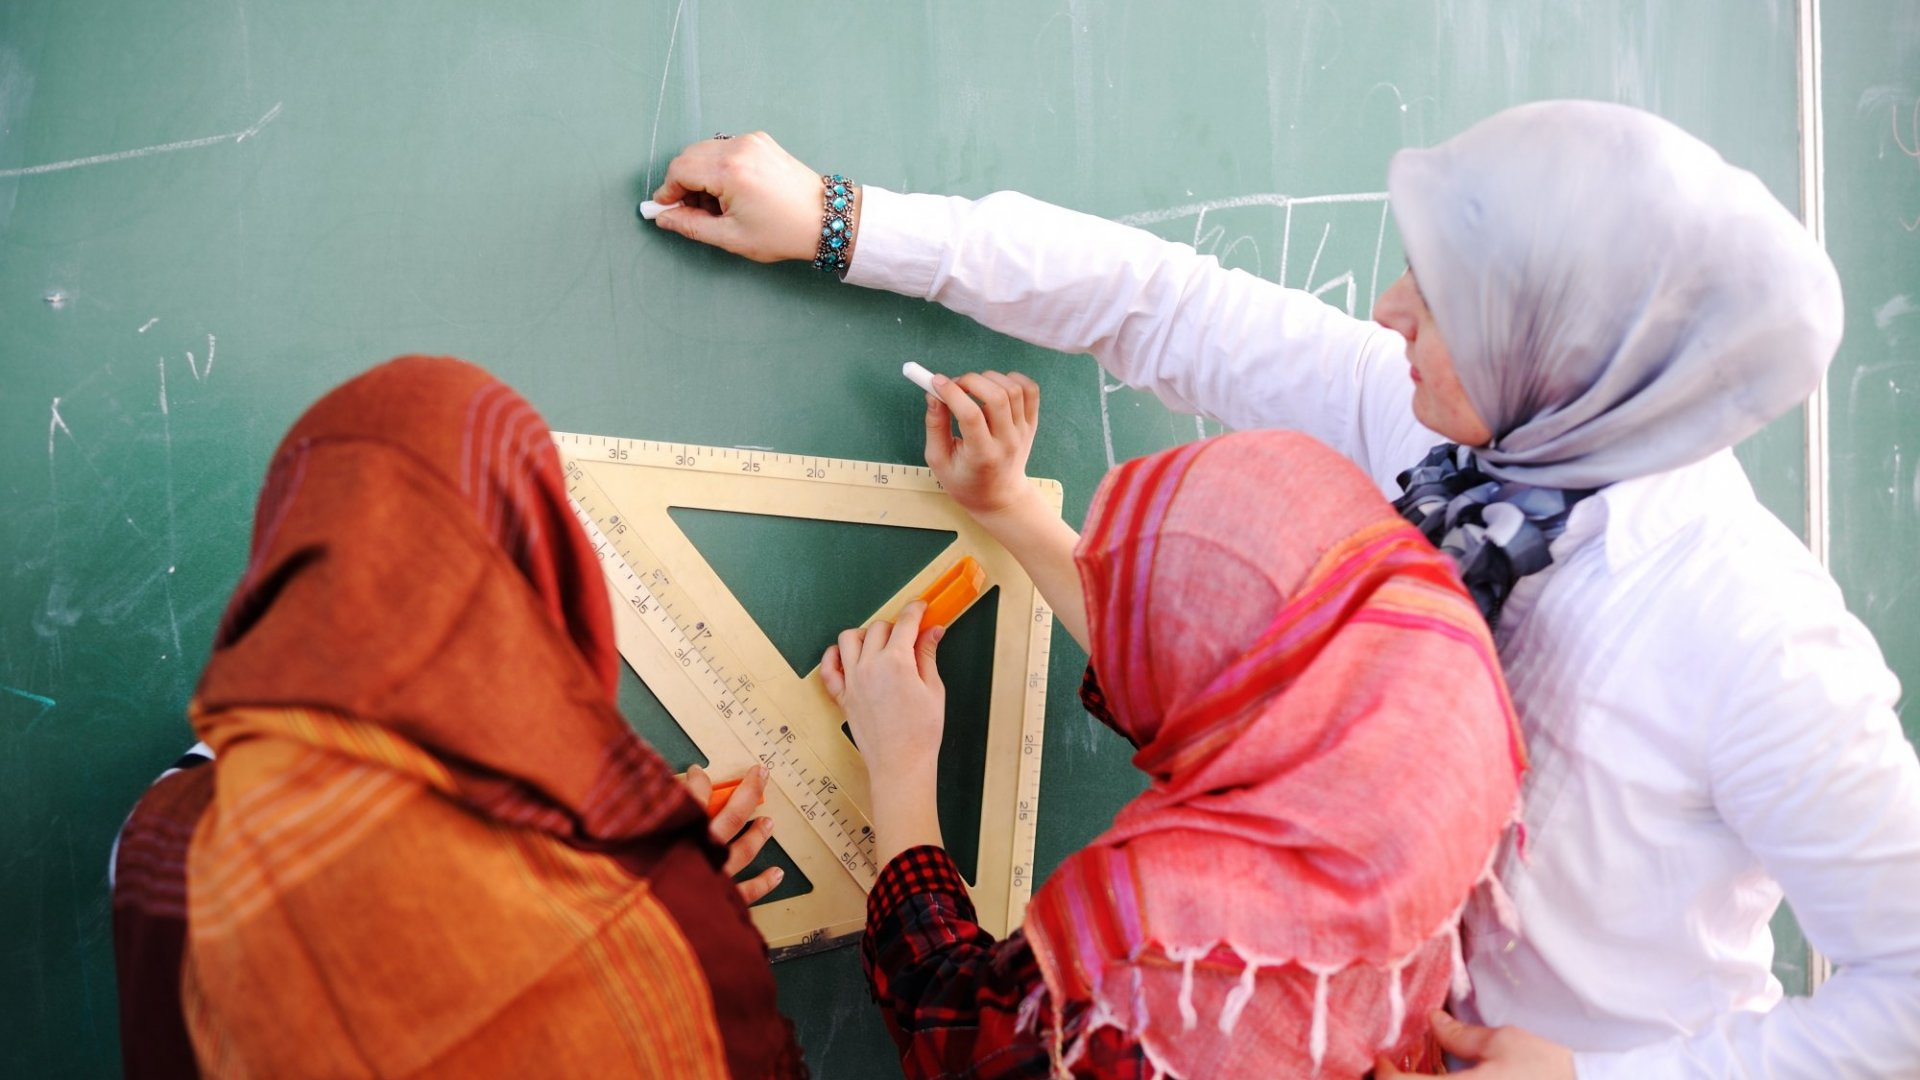 Why Do Middle Eastern Women Pursue STEM Careers at a Higher Rate than American Women?